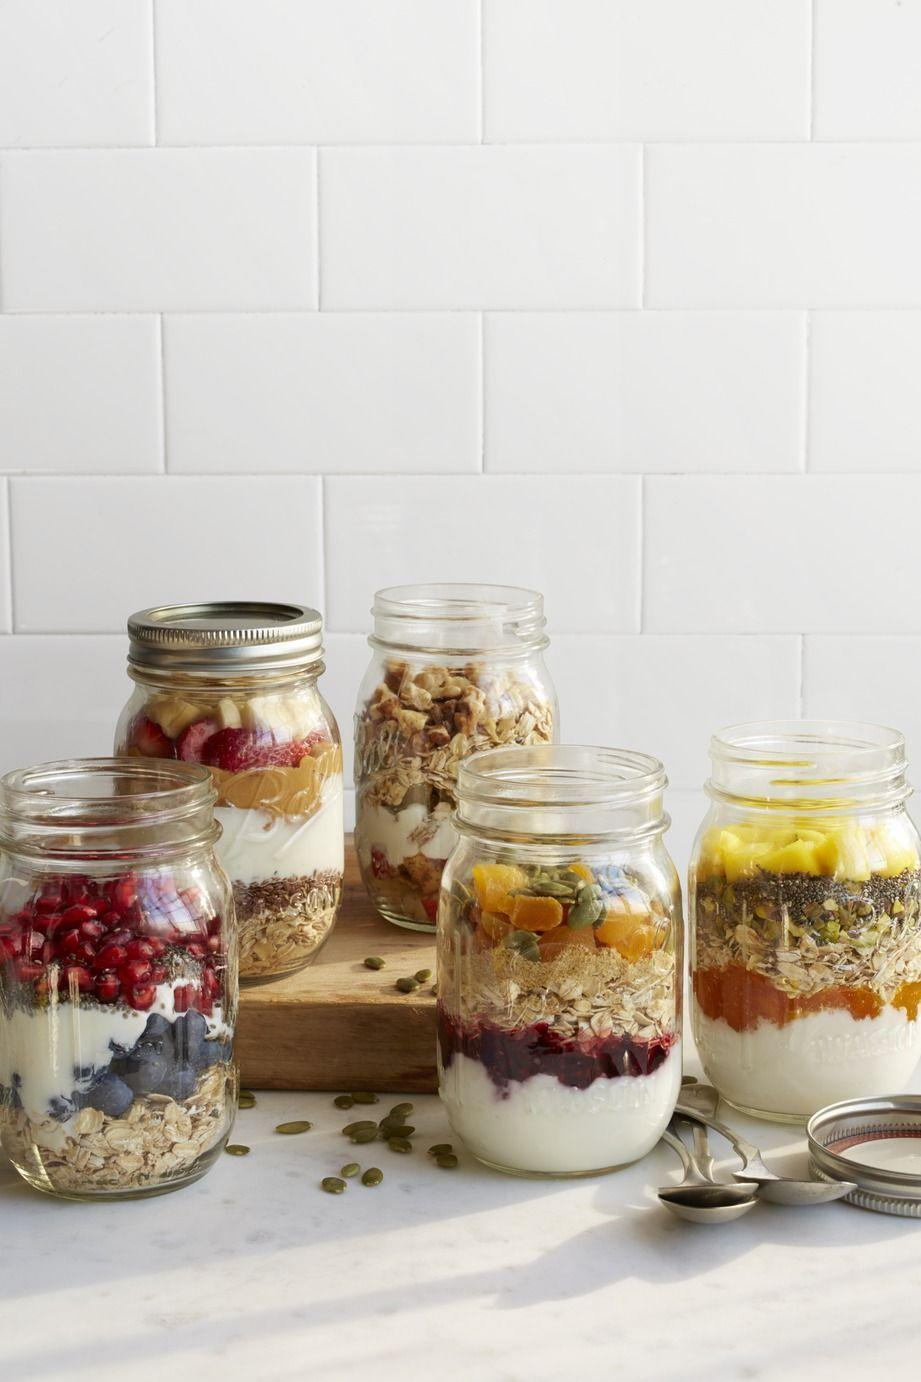 """<p>Overnight oats is a classic no-cook breakfast for many enterprising home cooks. A banana and strawberry granola combo is a great base for milk or fresh juice in the morning.</p><p><em><a href=""""https://www.womansday.com/food-recipes/food-drinks/recipes/a51533/peanut-butter-banana-strawberry-jars/"""" rel=""""nofollow noopener"""" target=""""_blank"""" data-ylk=""""slk:Get the recipe from Woman's Day »"""" class=""""link rapid-noclick-resp"""">Get the recipe from Woman's Day »</a></em></p>"""